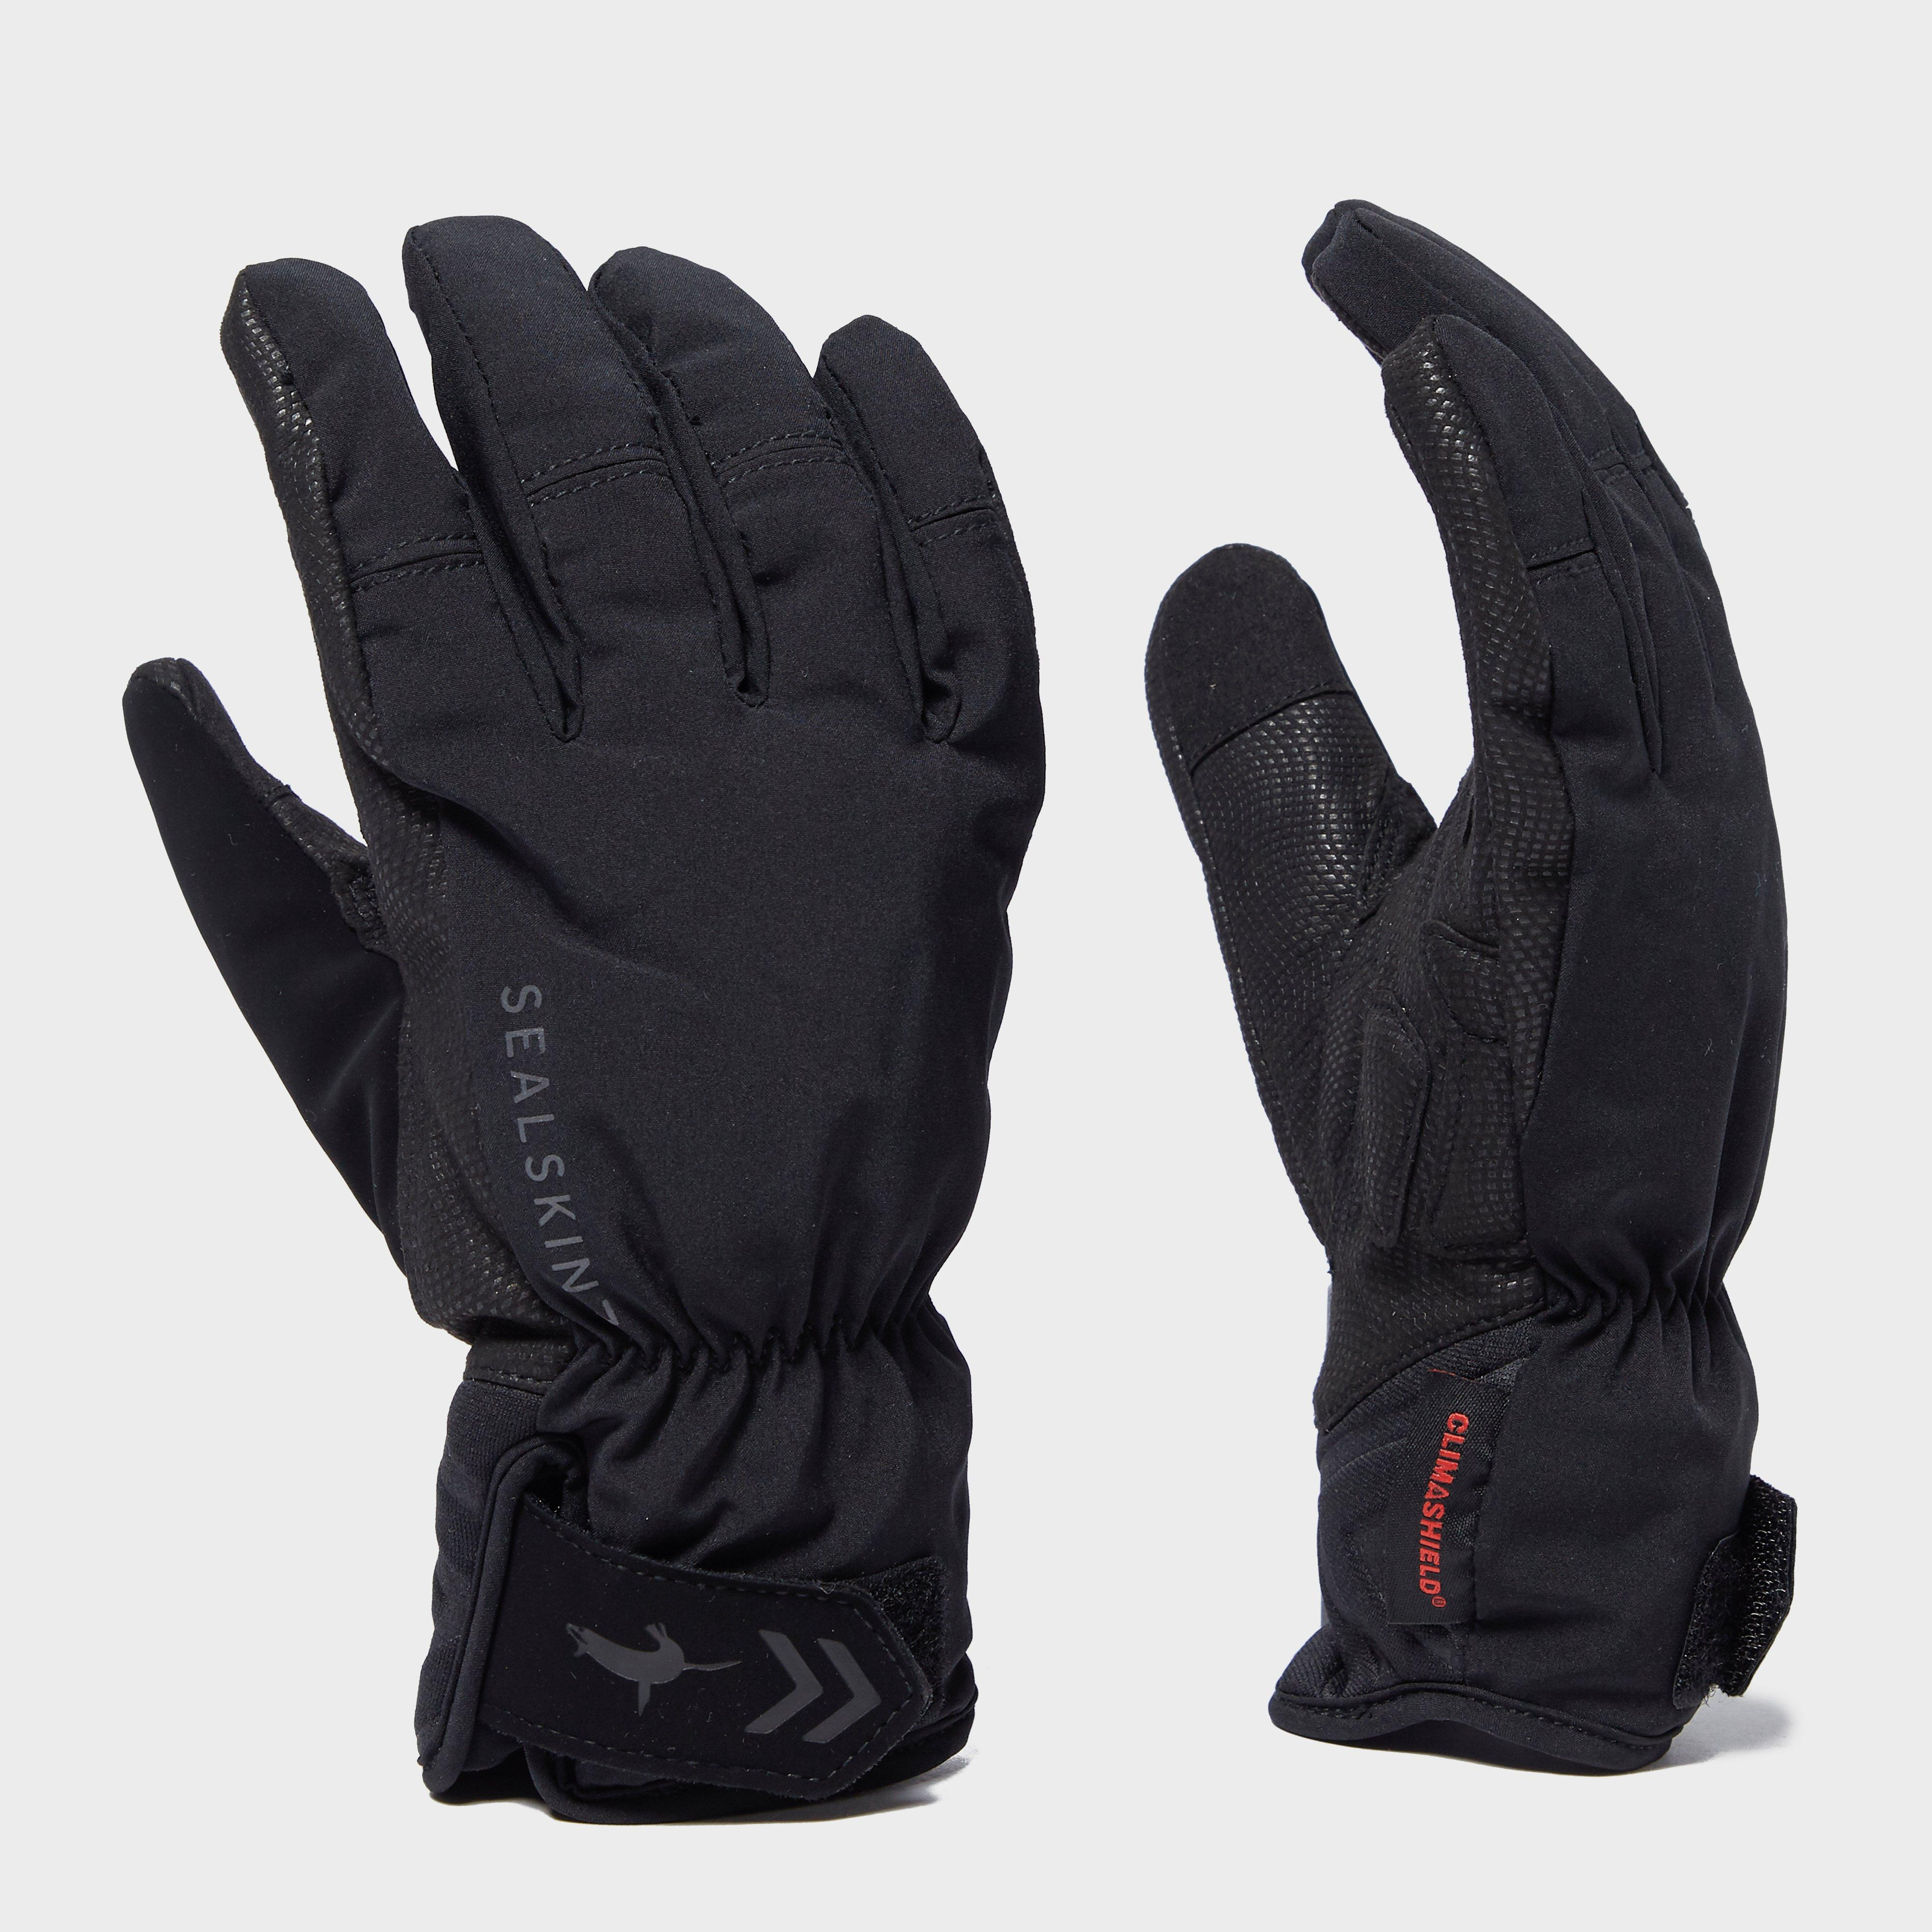 Sealskinz Women's Highland Gloves, Black